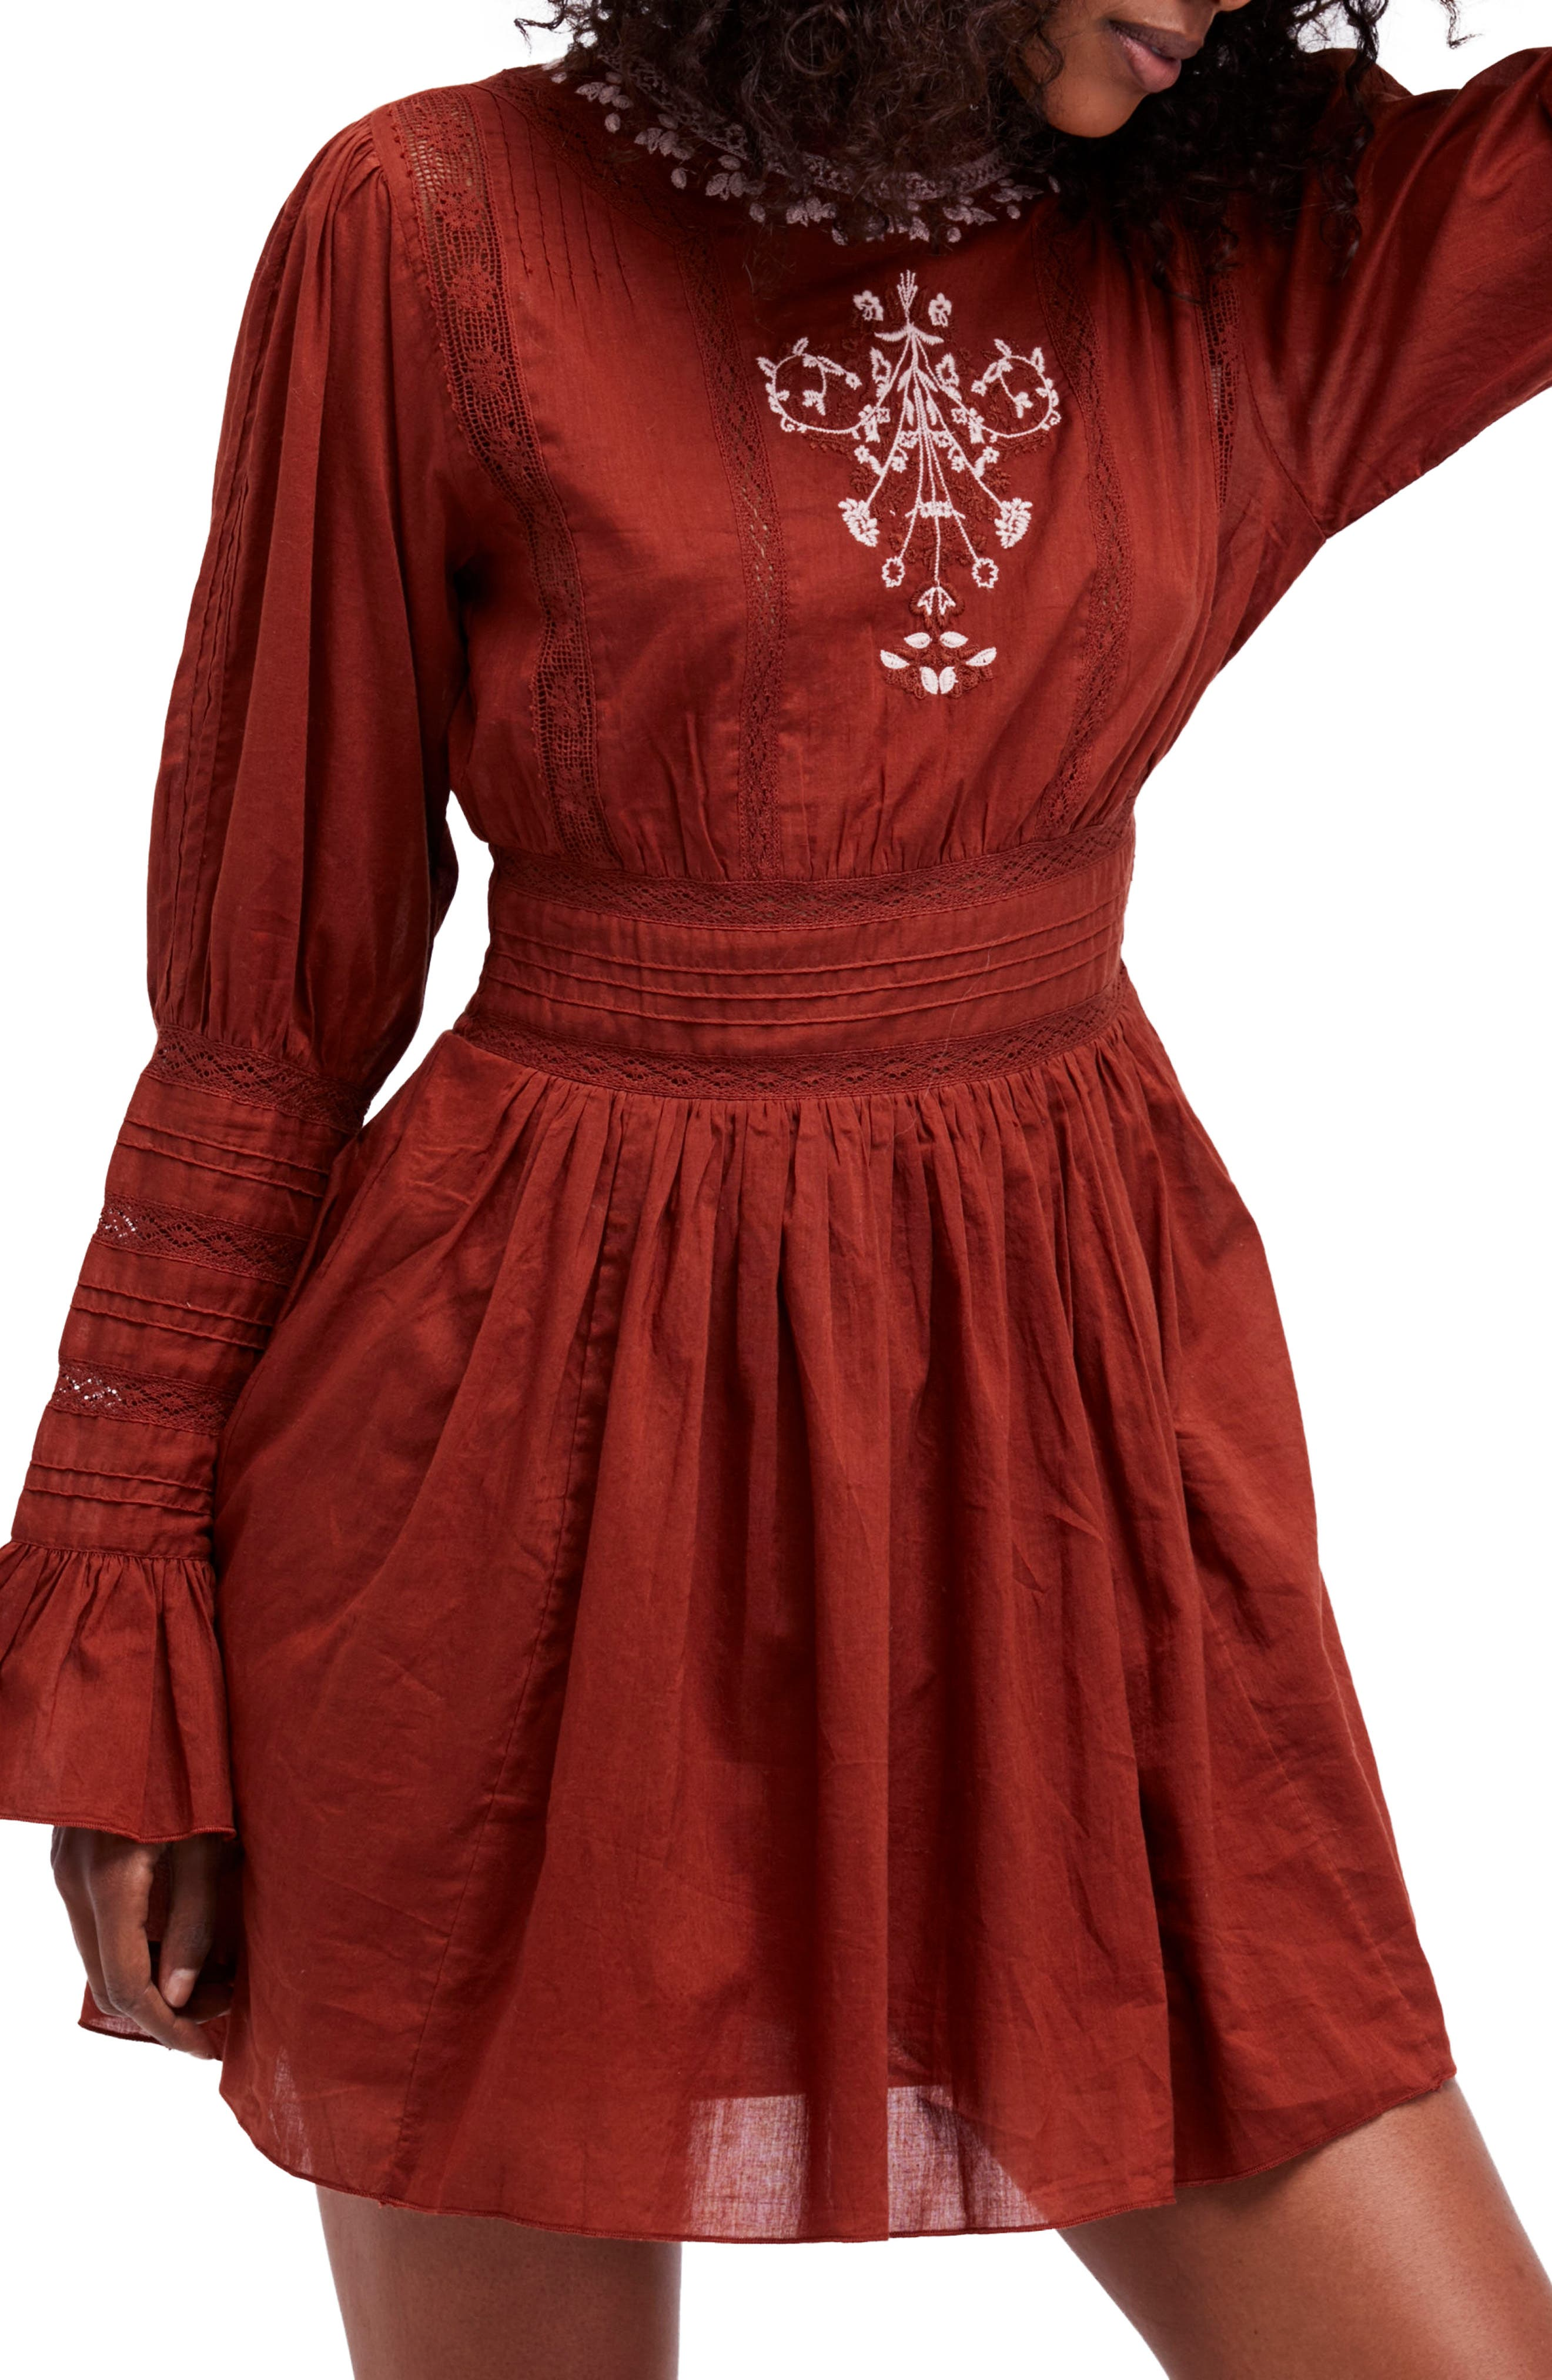 Victorian Minidress,                             Alternate thumbnail 5, color,                             625